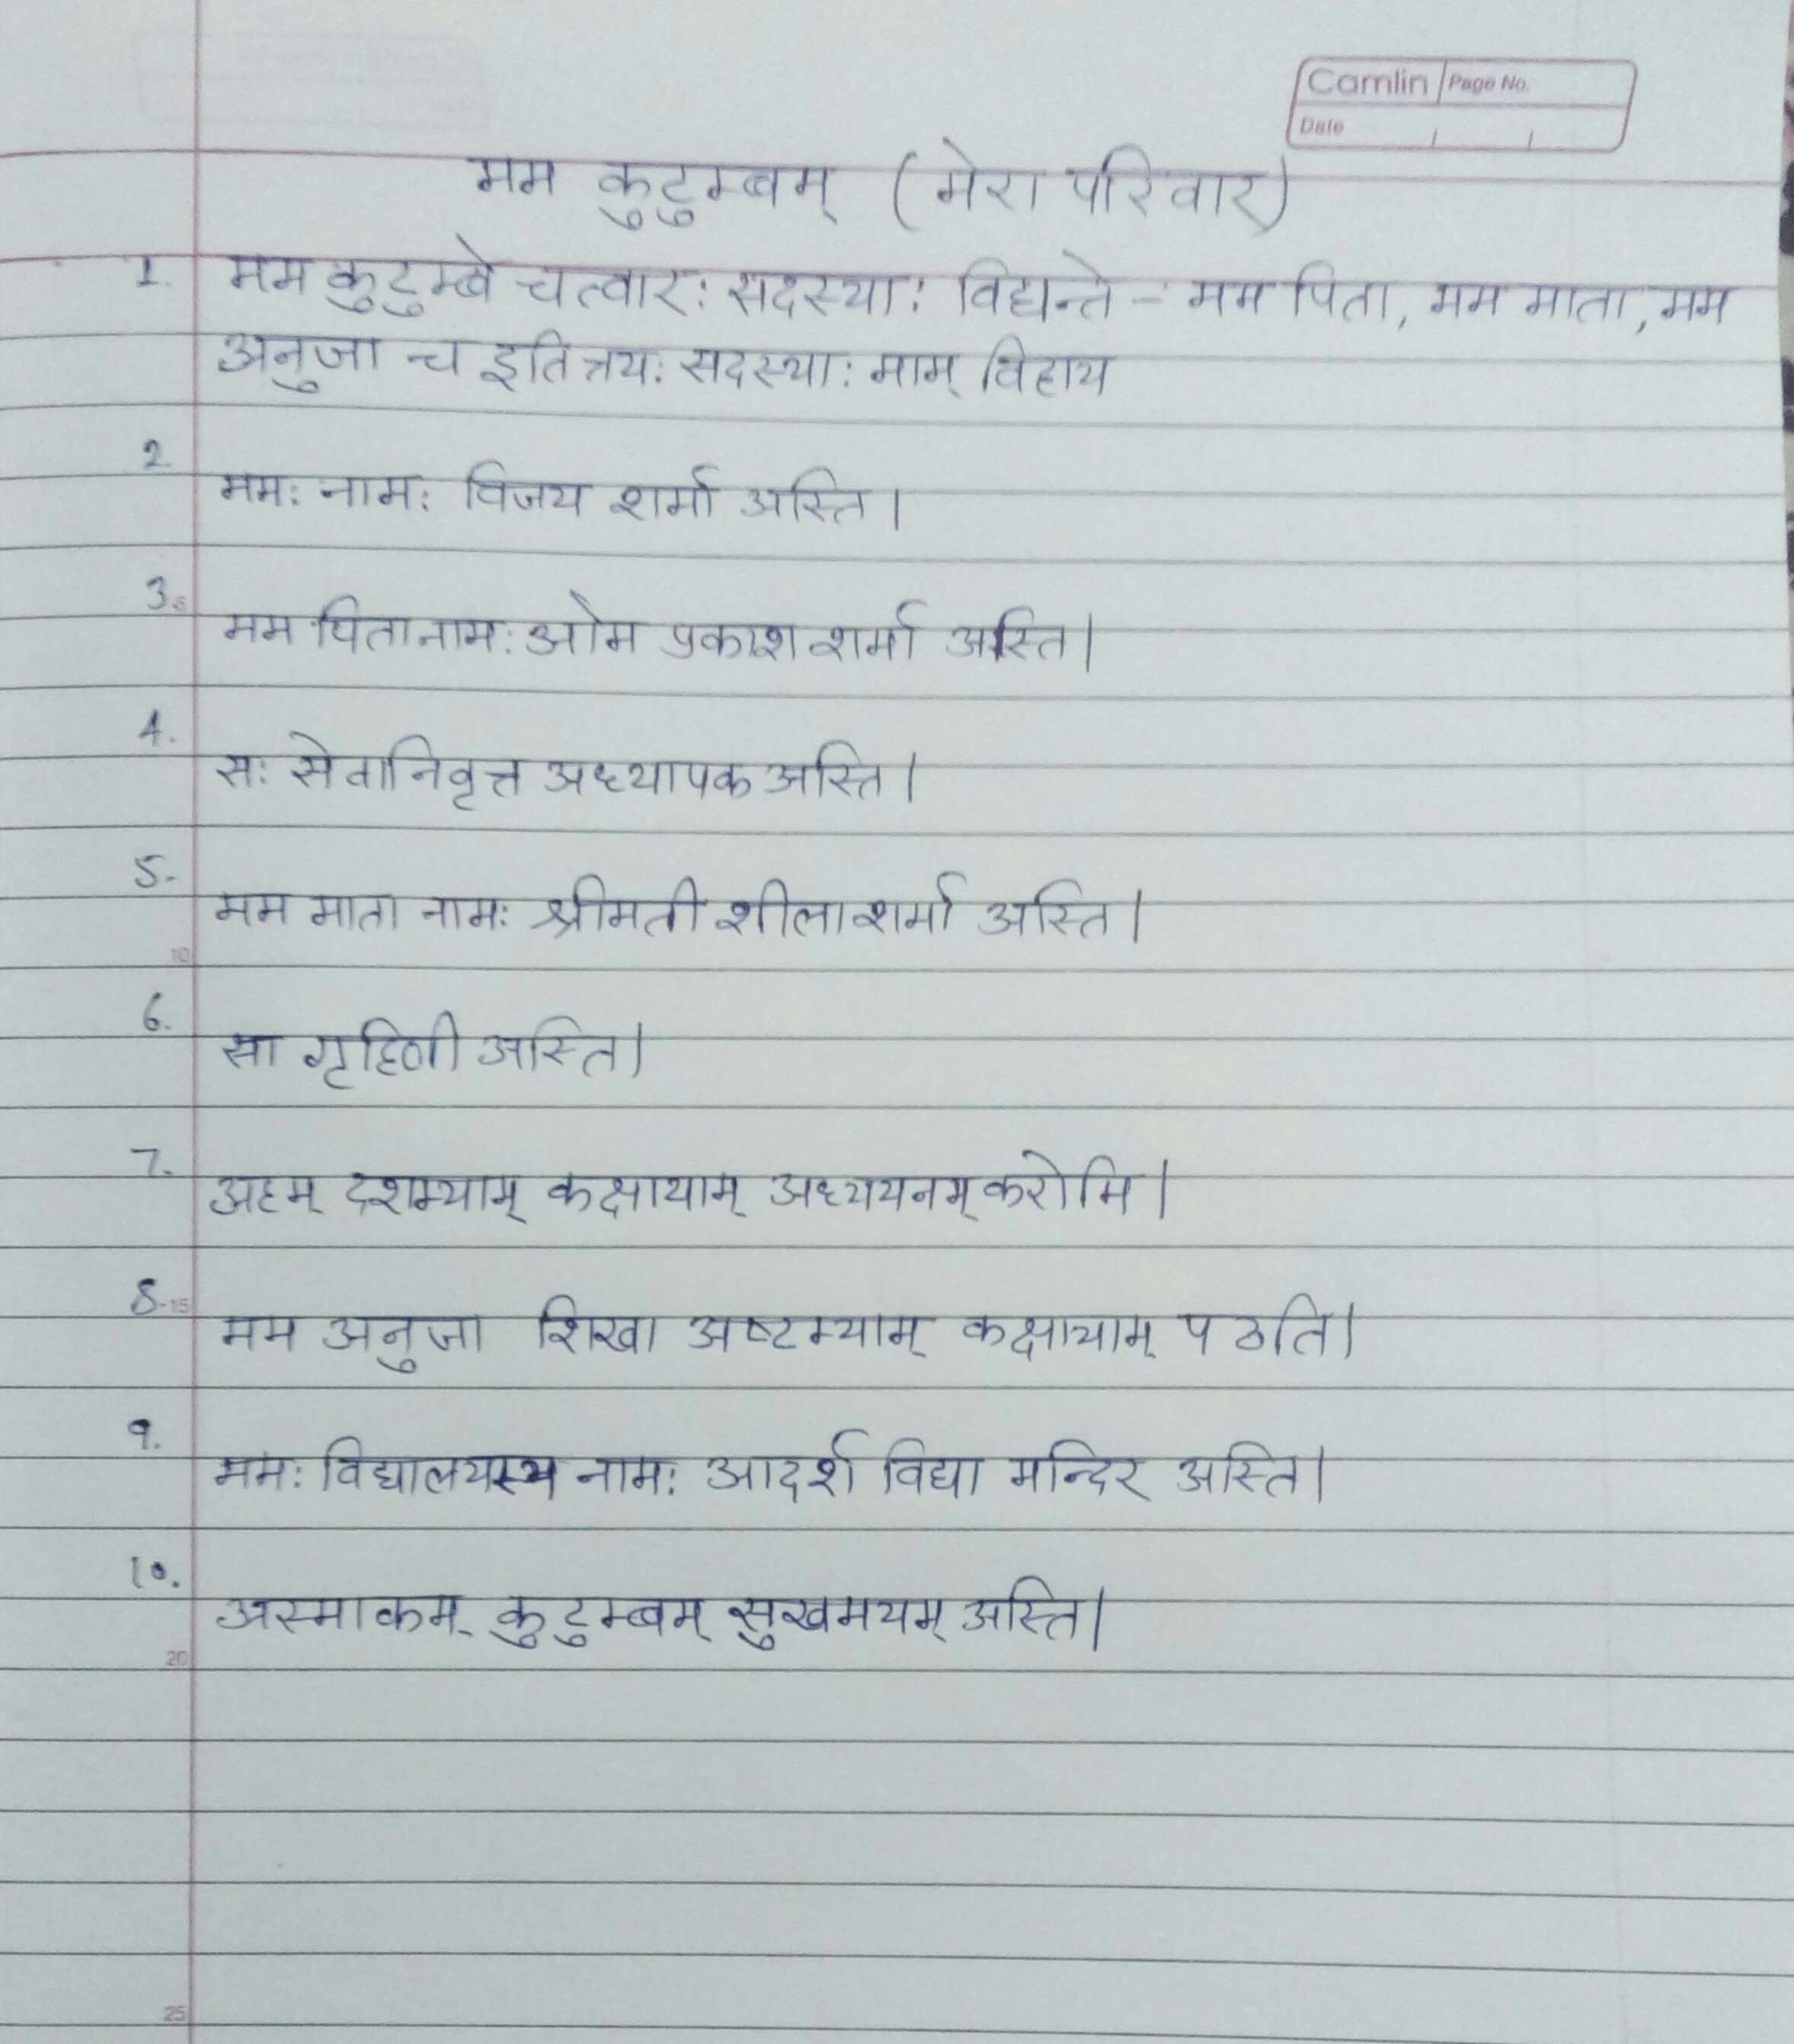 essay in sanskrit on picnic 6 sample one paragraph essay topics for kids on 1 a visit to zoo 2 a class picnic 3 first day at school 4 my birthday 5 my favorite game 6 my country 1 a visit to zoo last sunday, i went.